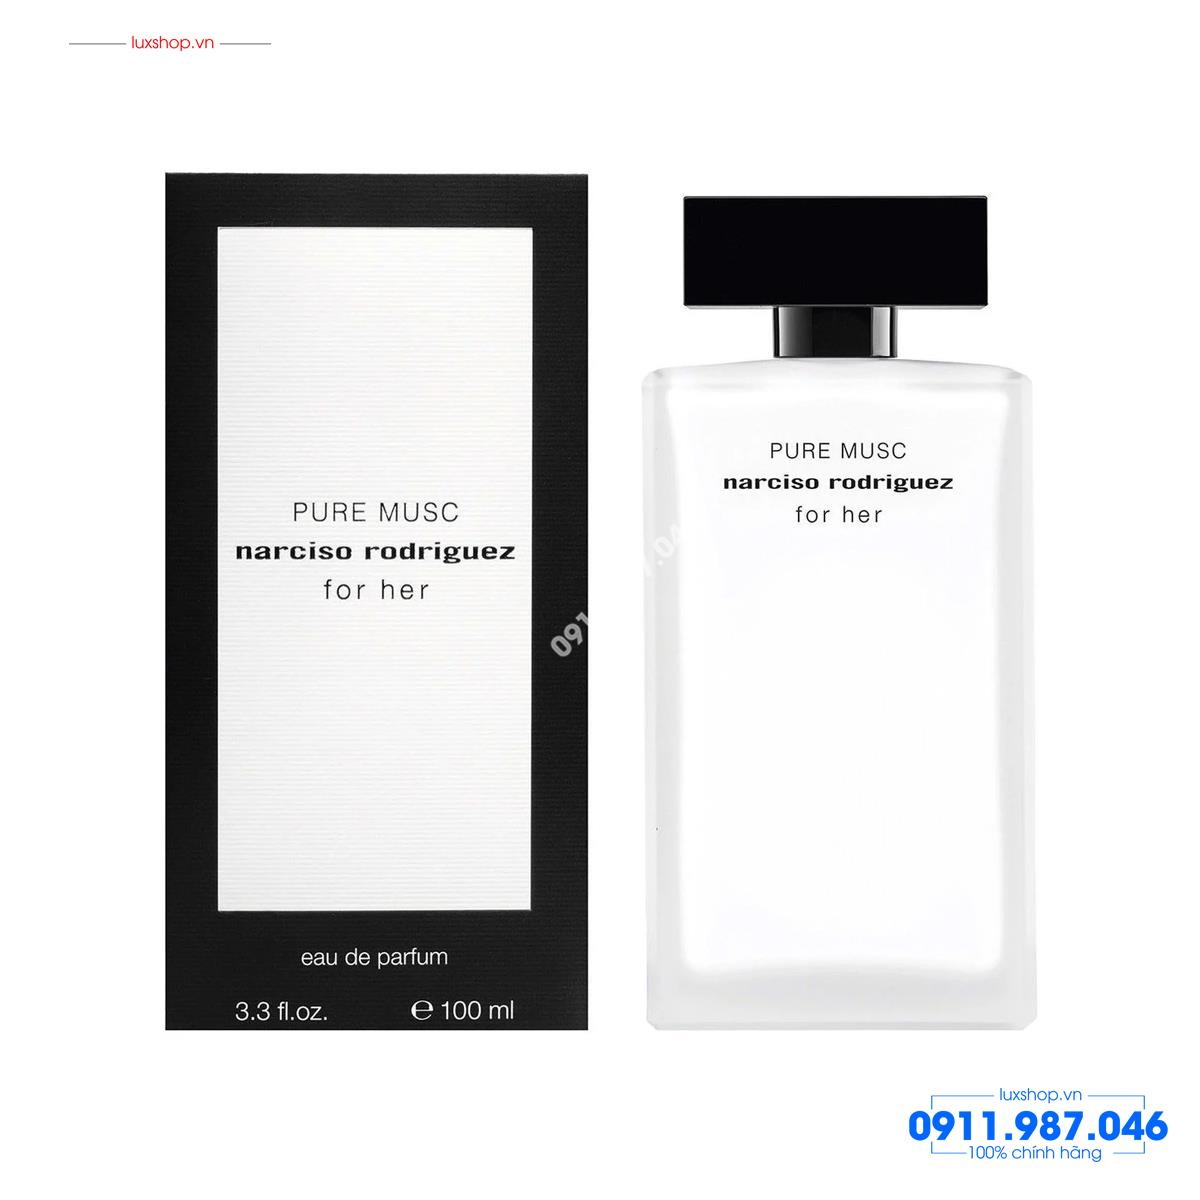 nuoc-hoa-nu-narciso-rodriguez-pure-musc-for-her-edp-100ml-chinh-hang-my-l101947